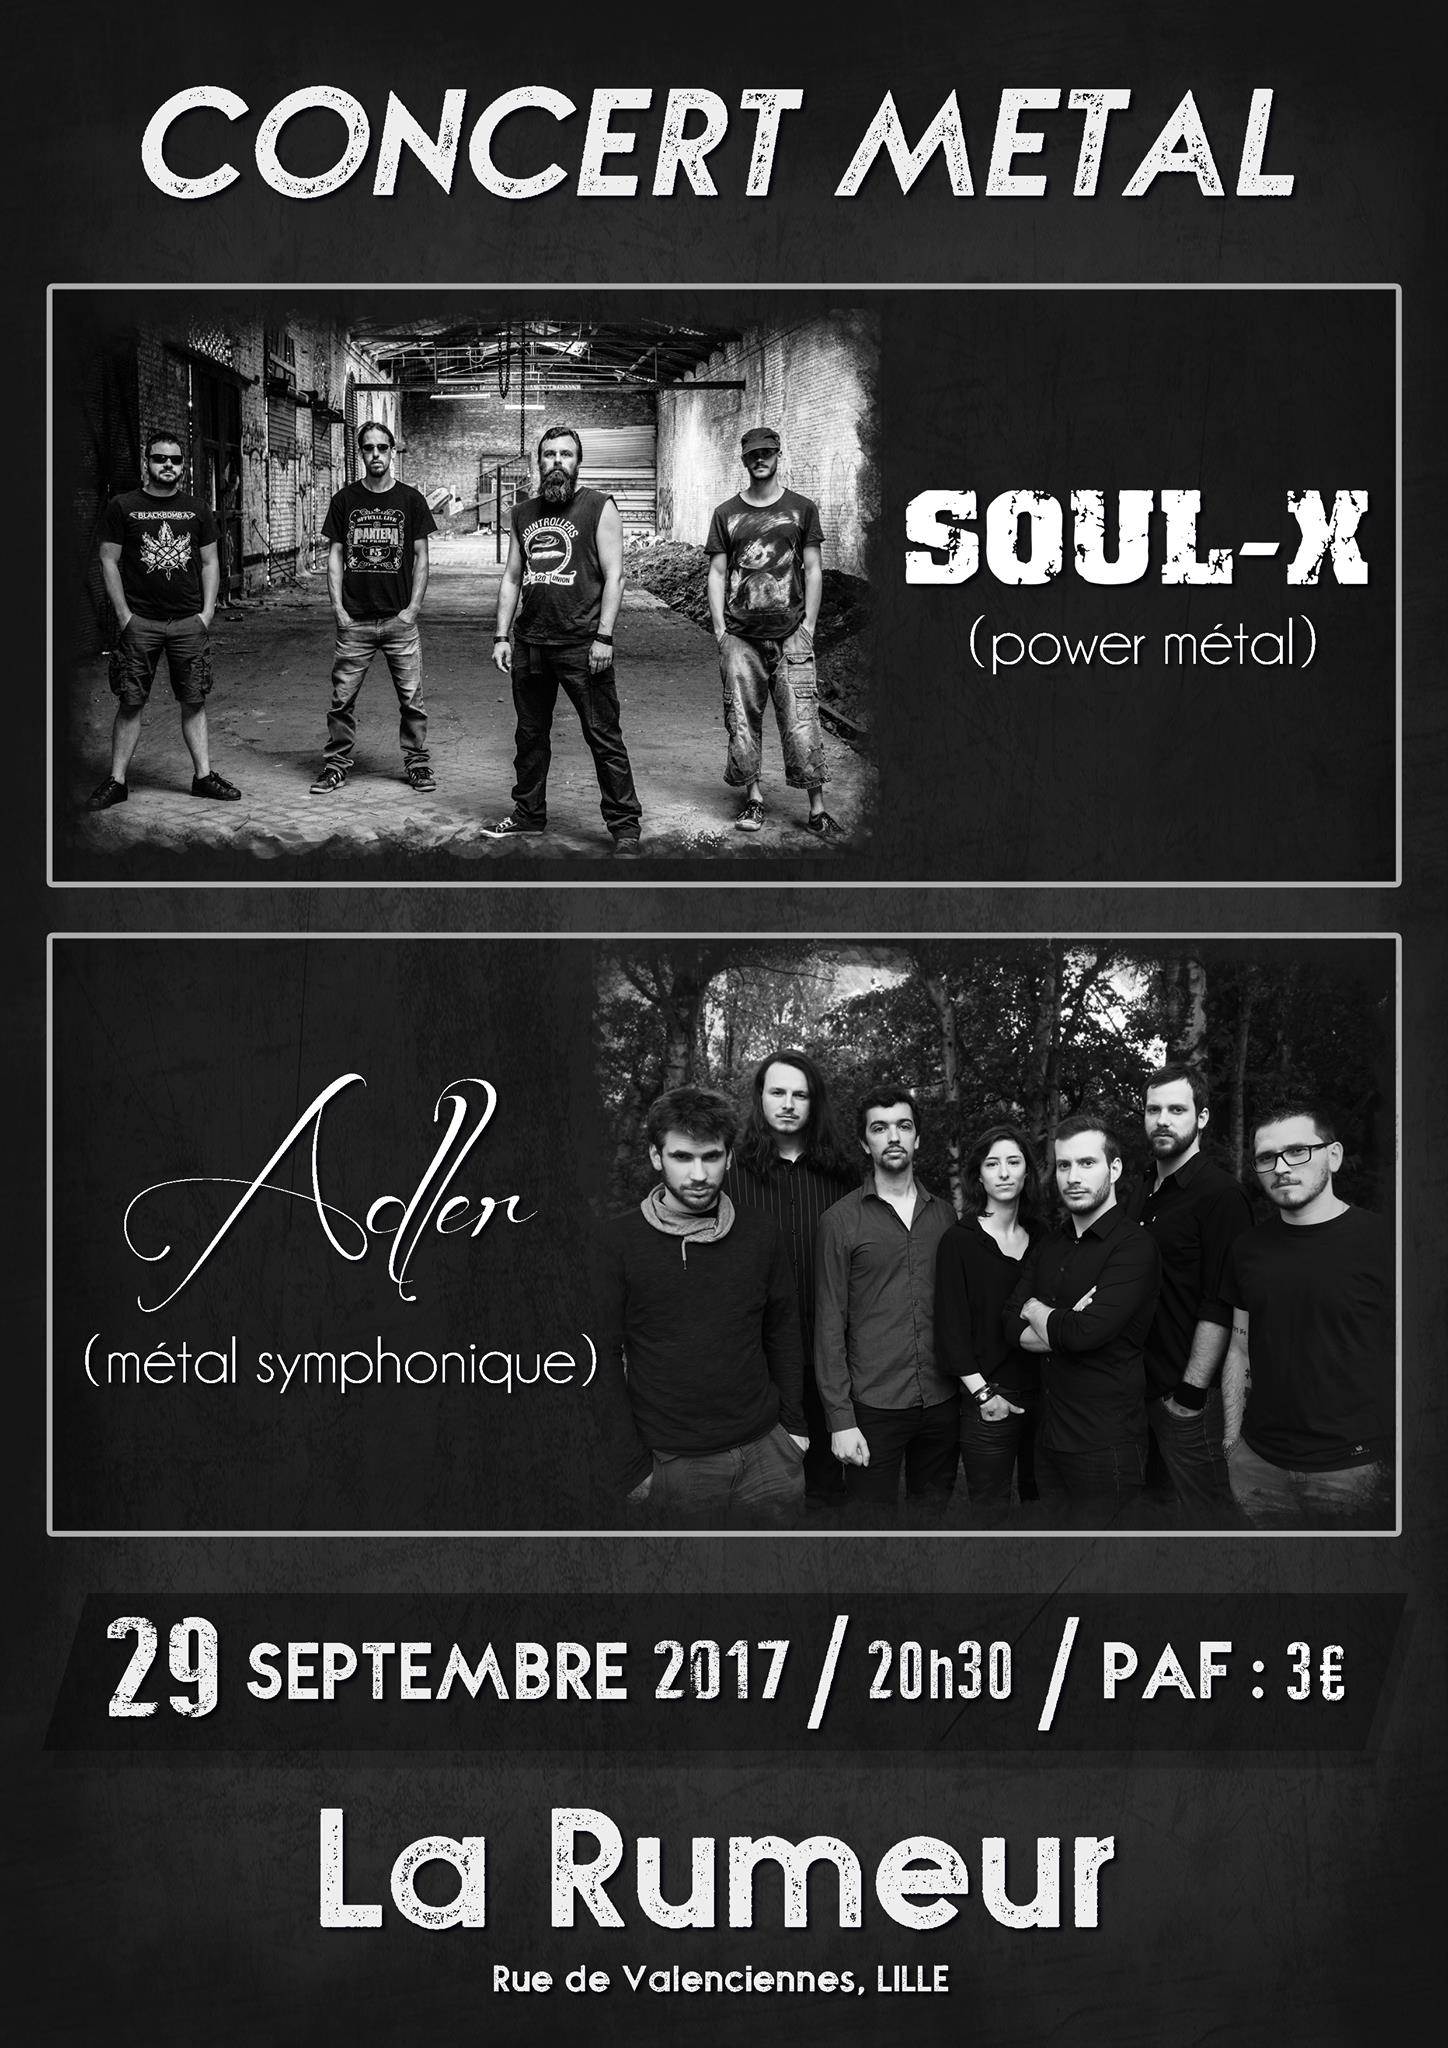 concerts adler soul x la rumeur lille la. Black Bedroom Furniture Sets. Home Design Ideas